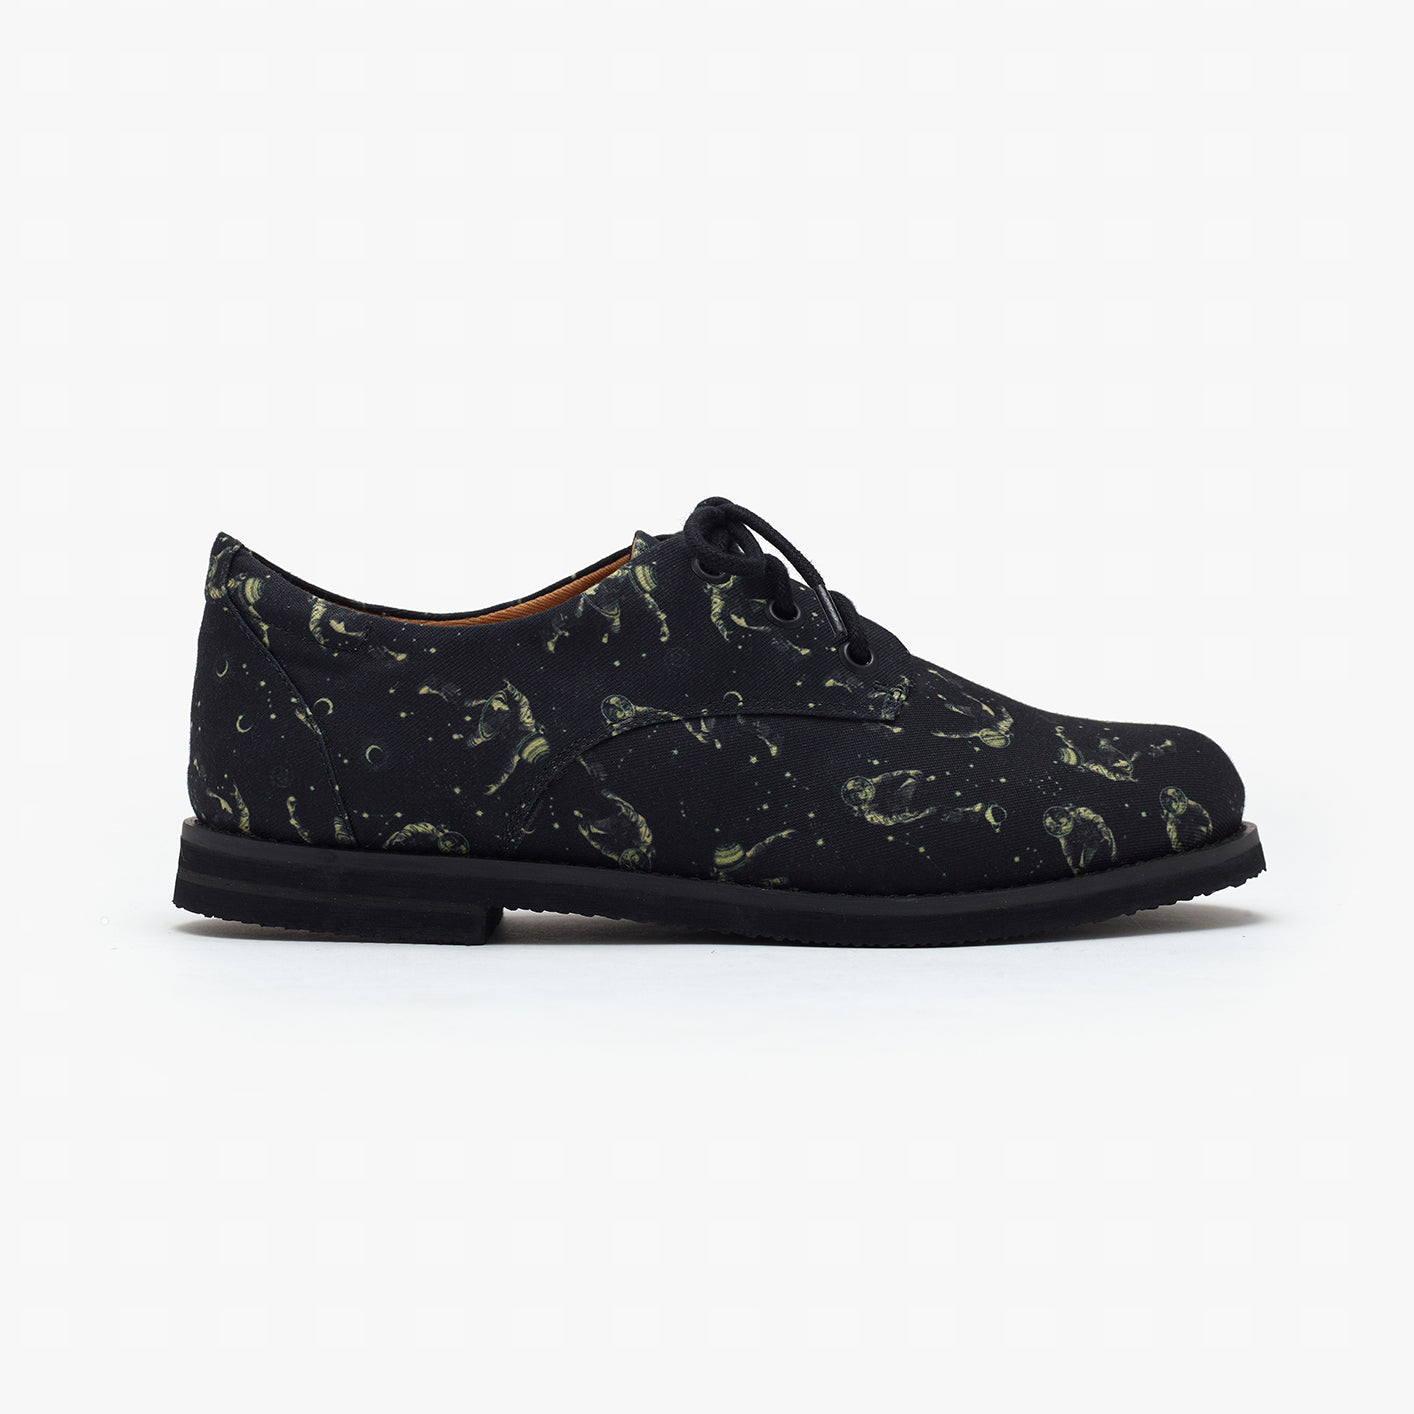 COSMOS OXFORD - Insecta Shoes Brasil